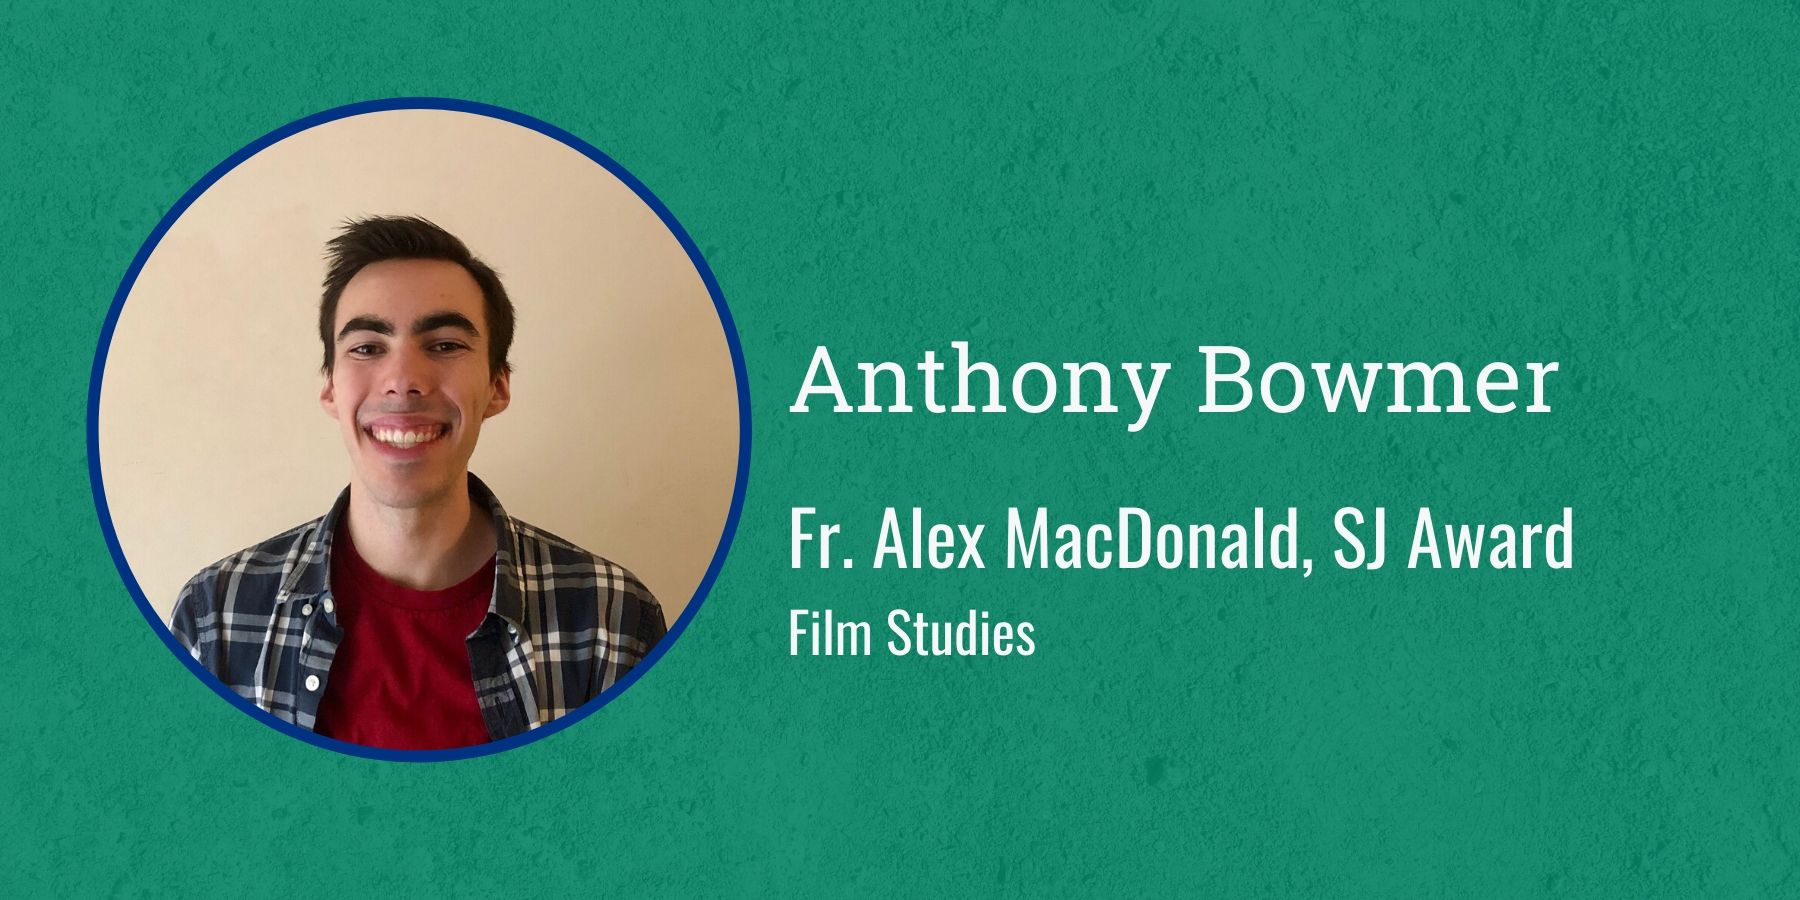 Photo of Anthony Bowmer and text Fr. Alex MacDonald, S.J. Award, Film Studies